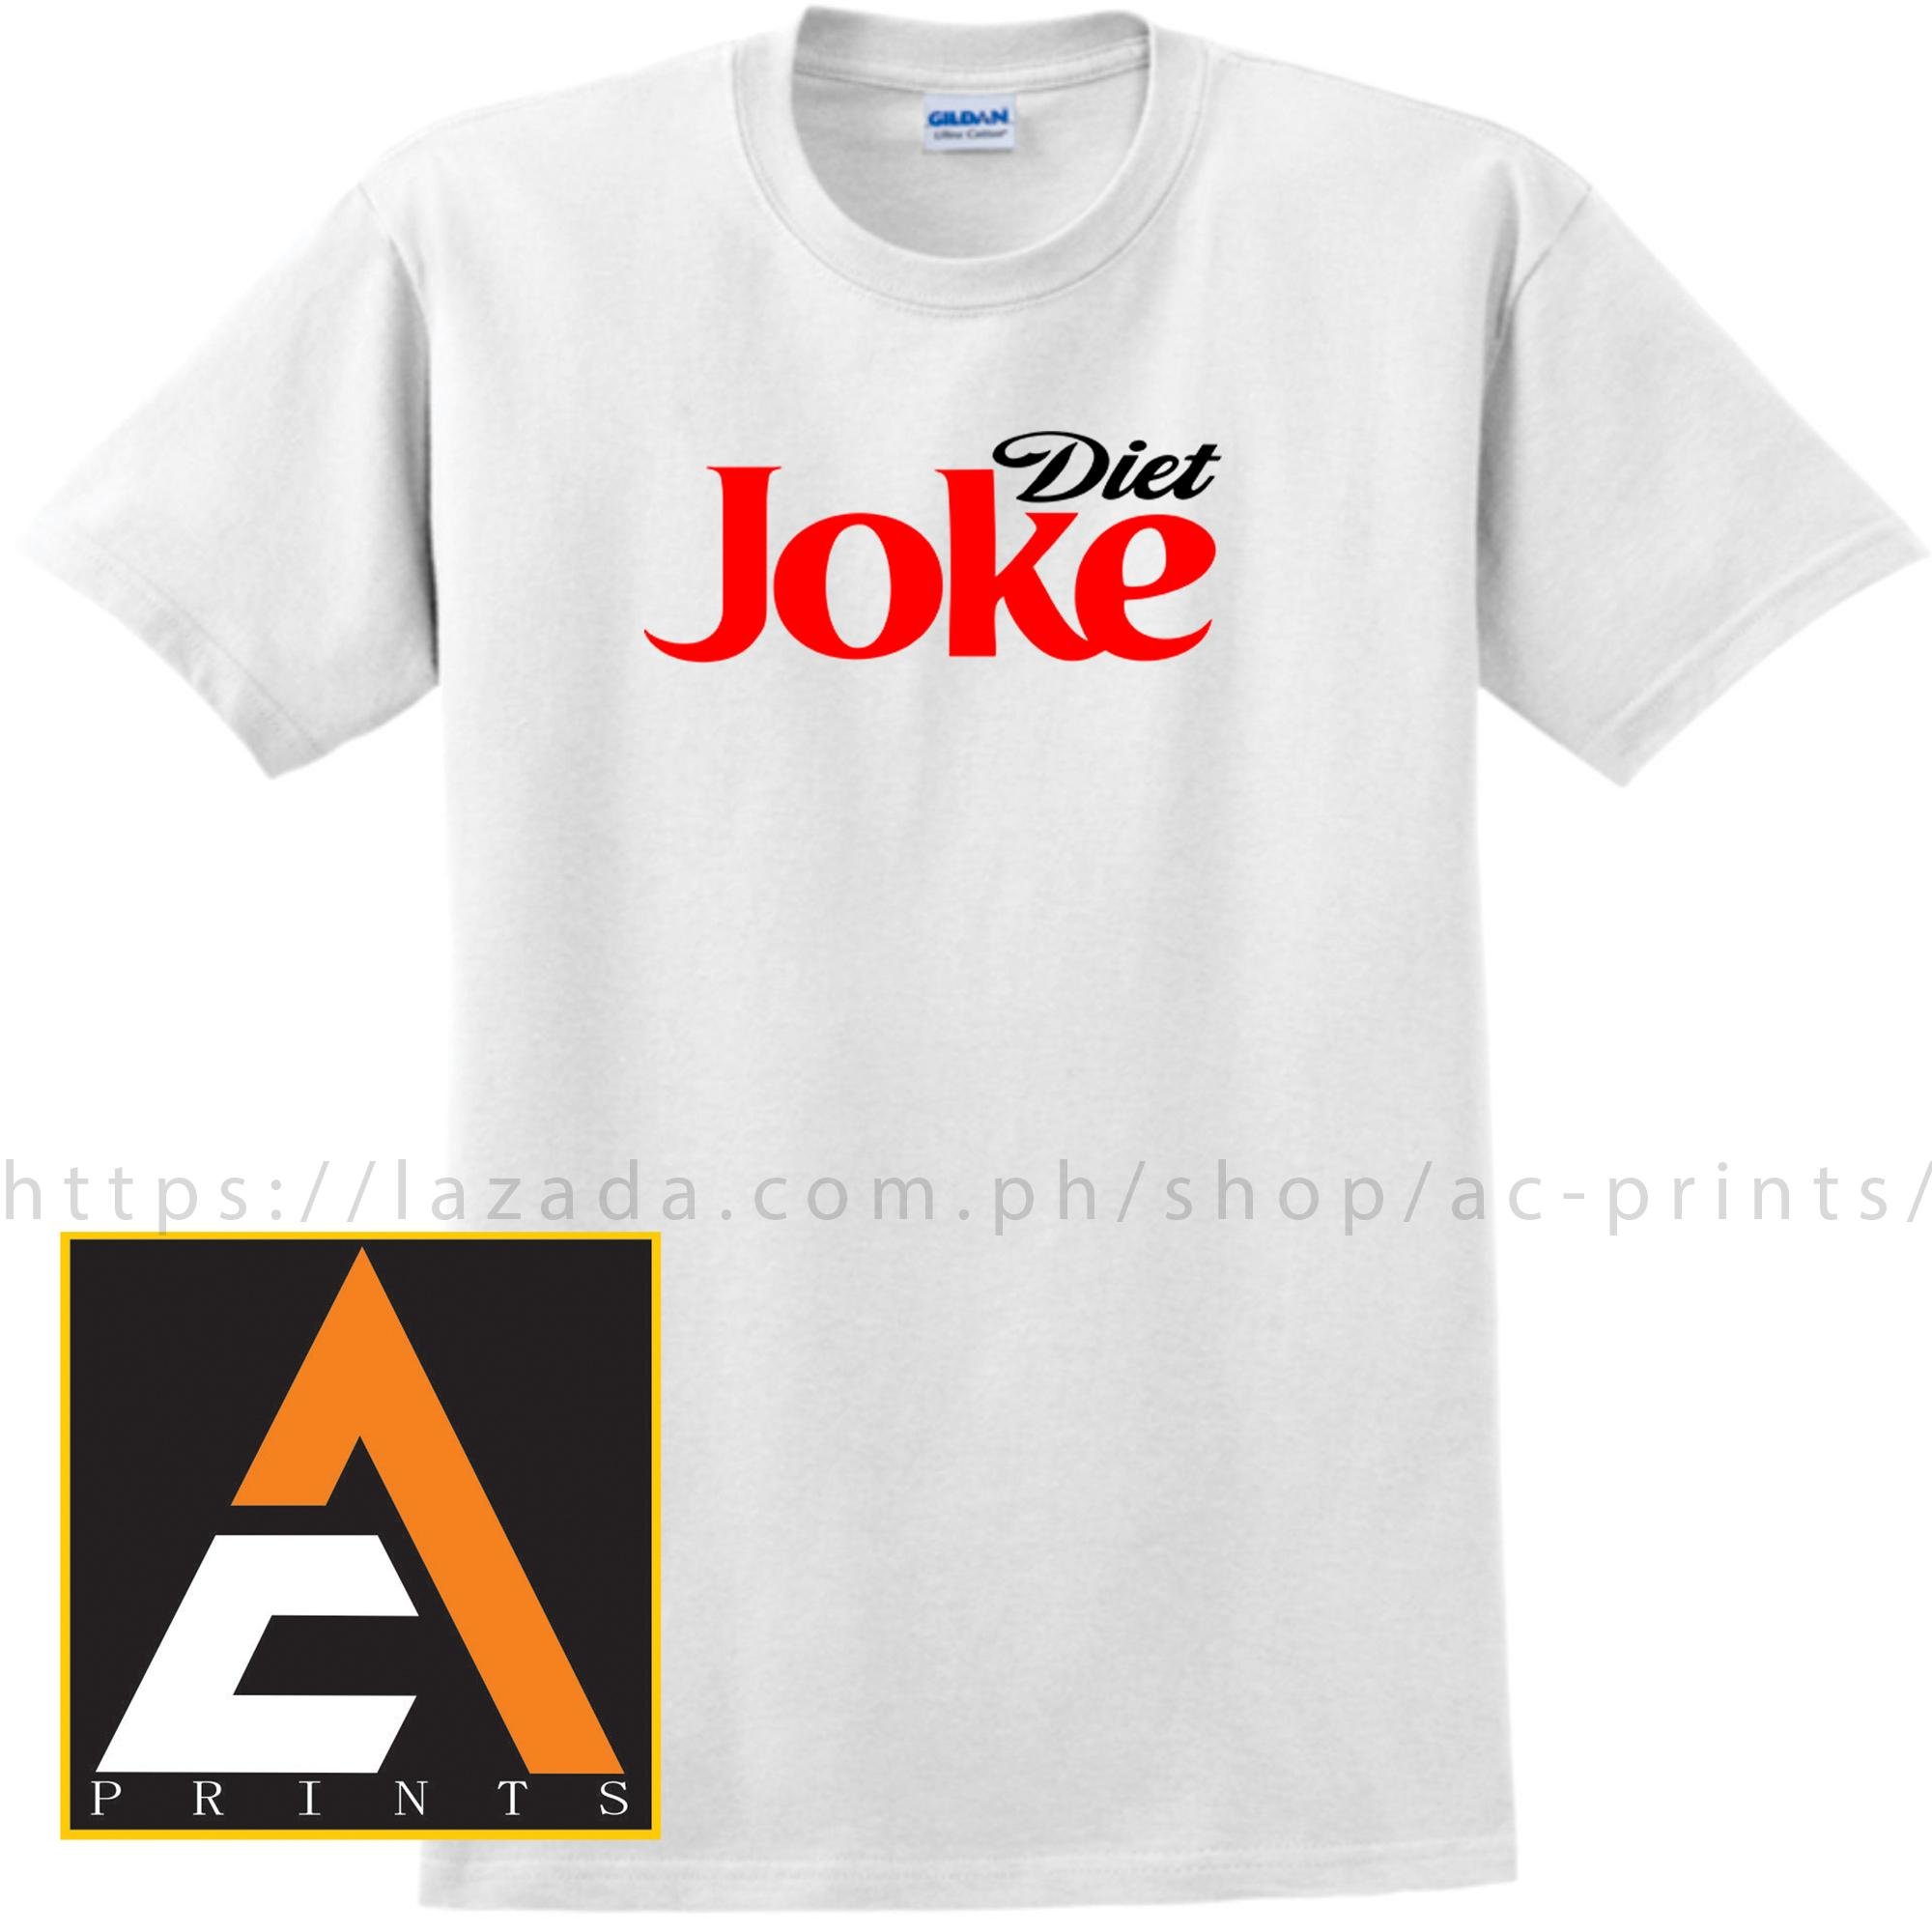 T Shirt Clothing For Men Sale Mens Online Fila Baju Polo Skilly Orange Medium Xl Brands Prices Reviews In Philippines